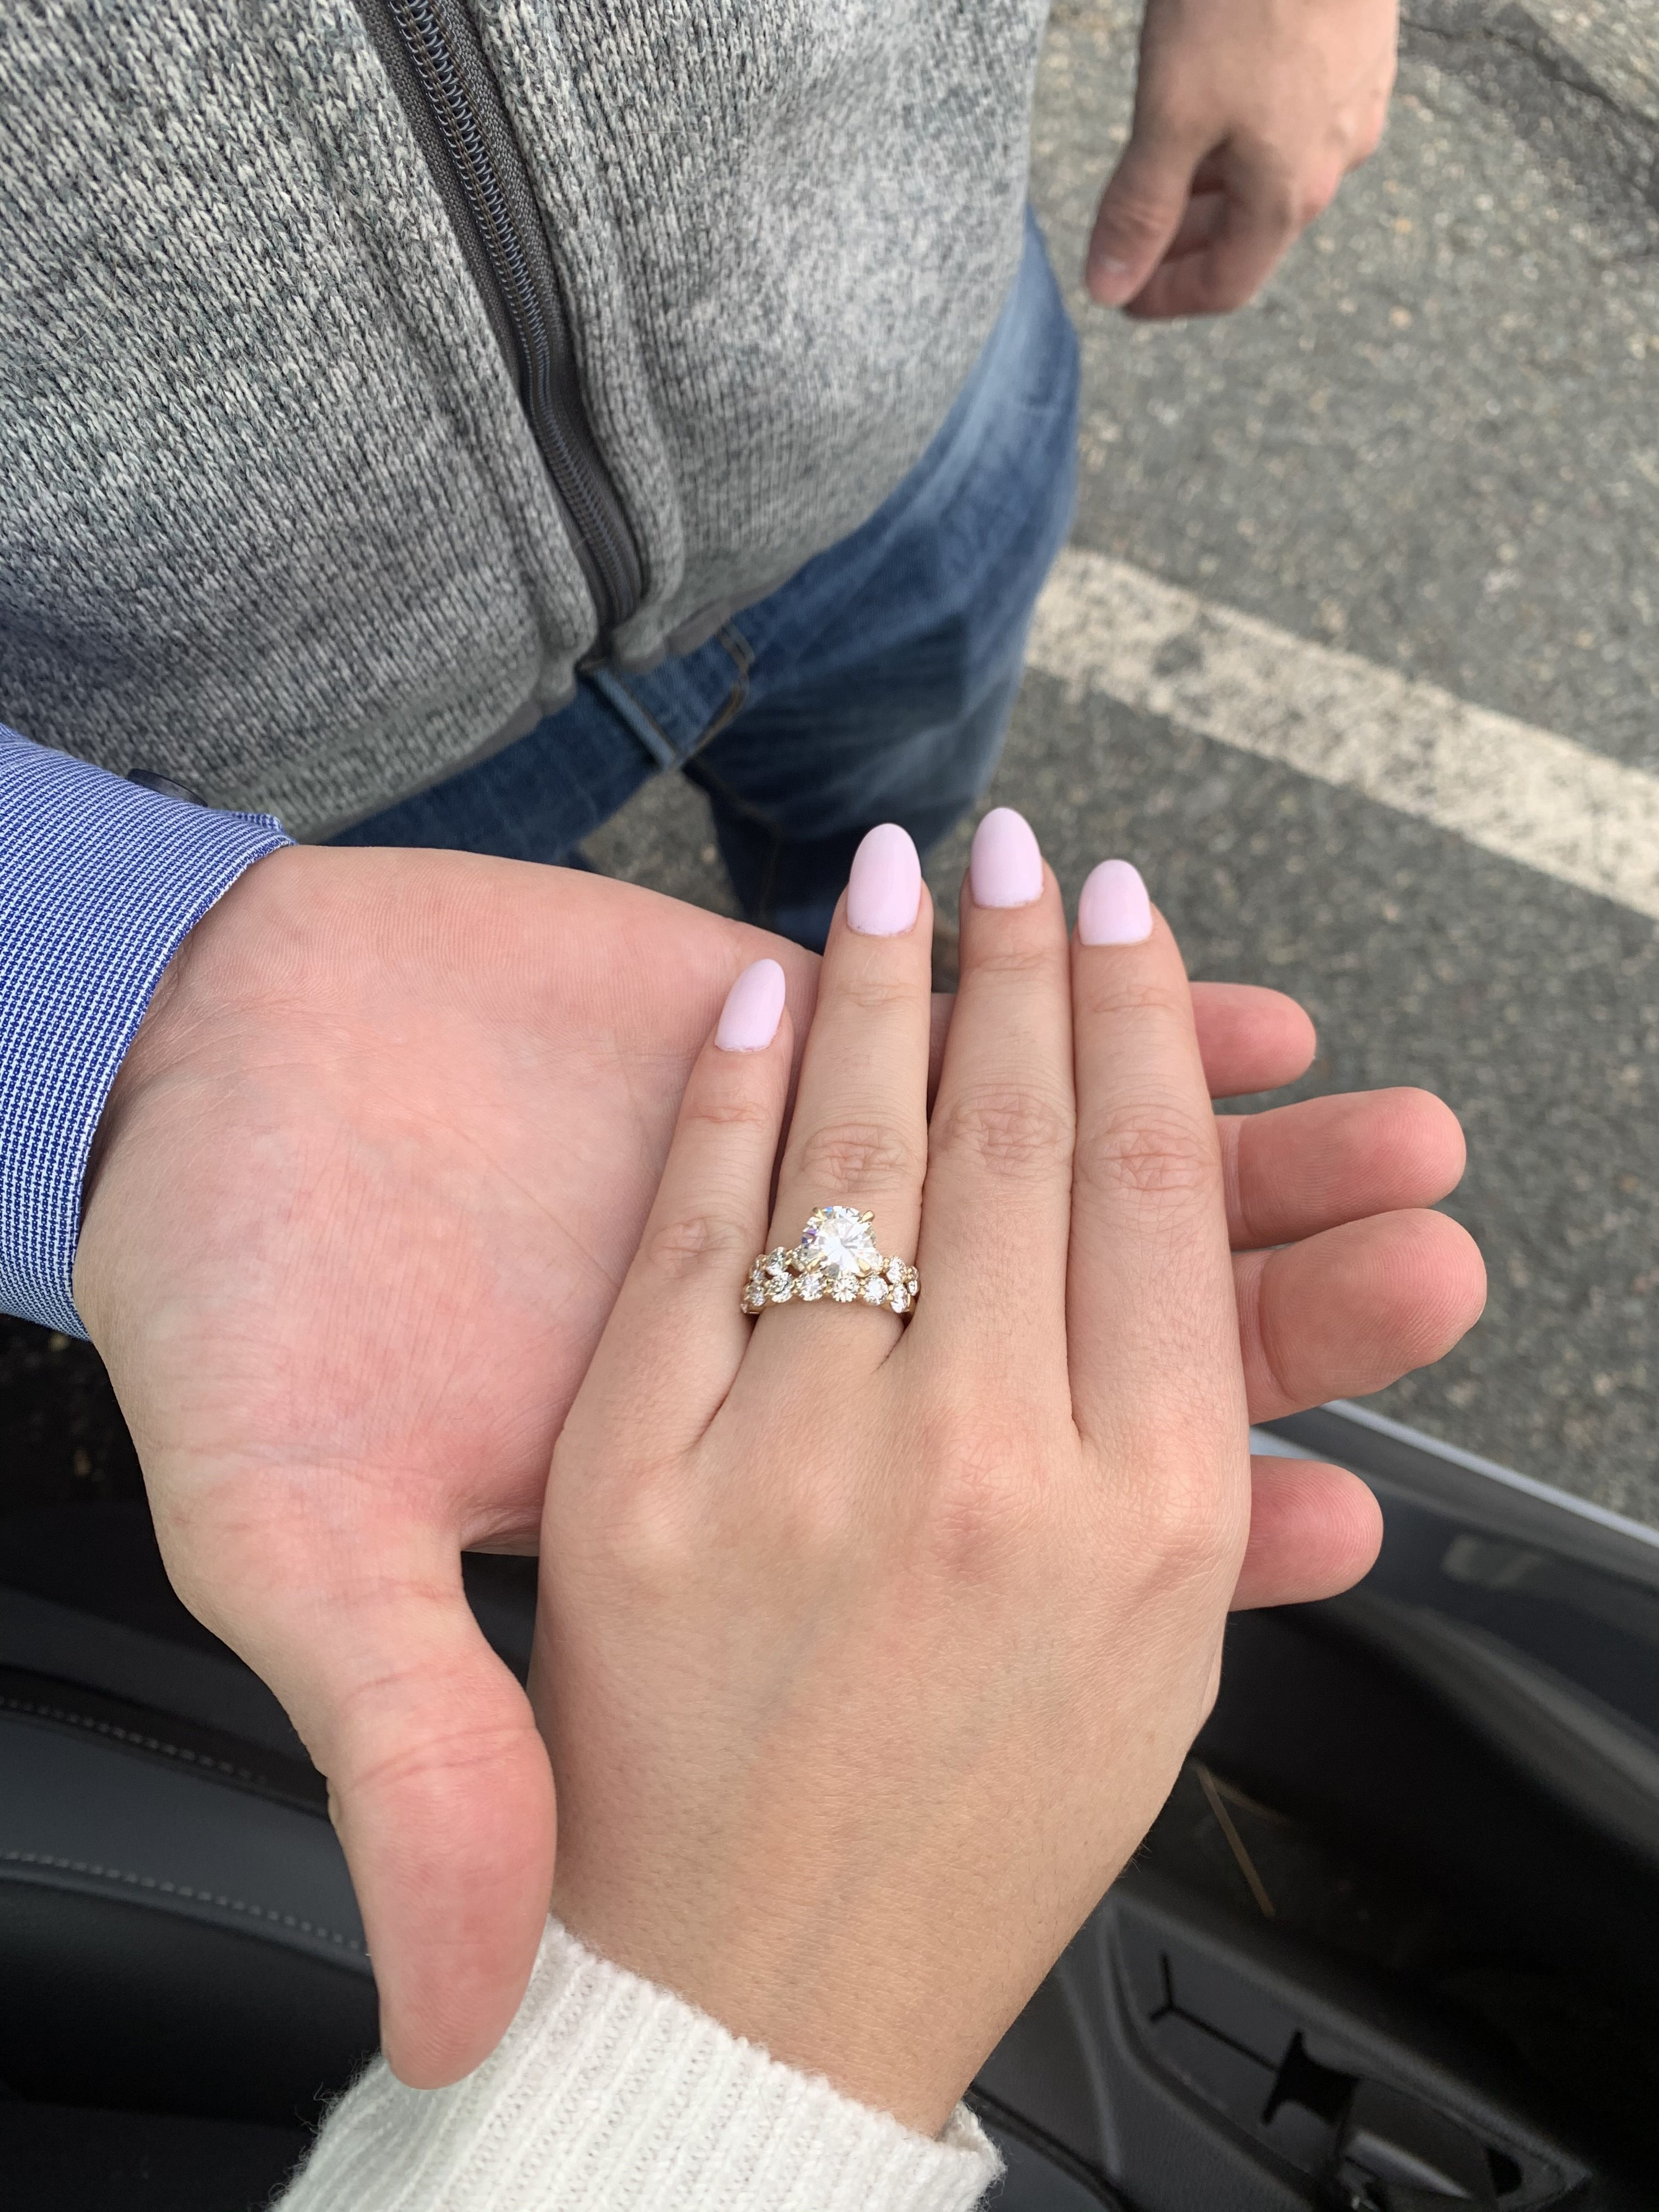 Brianna and Nick Part 2: The Groom's Side of Getting Engaged